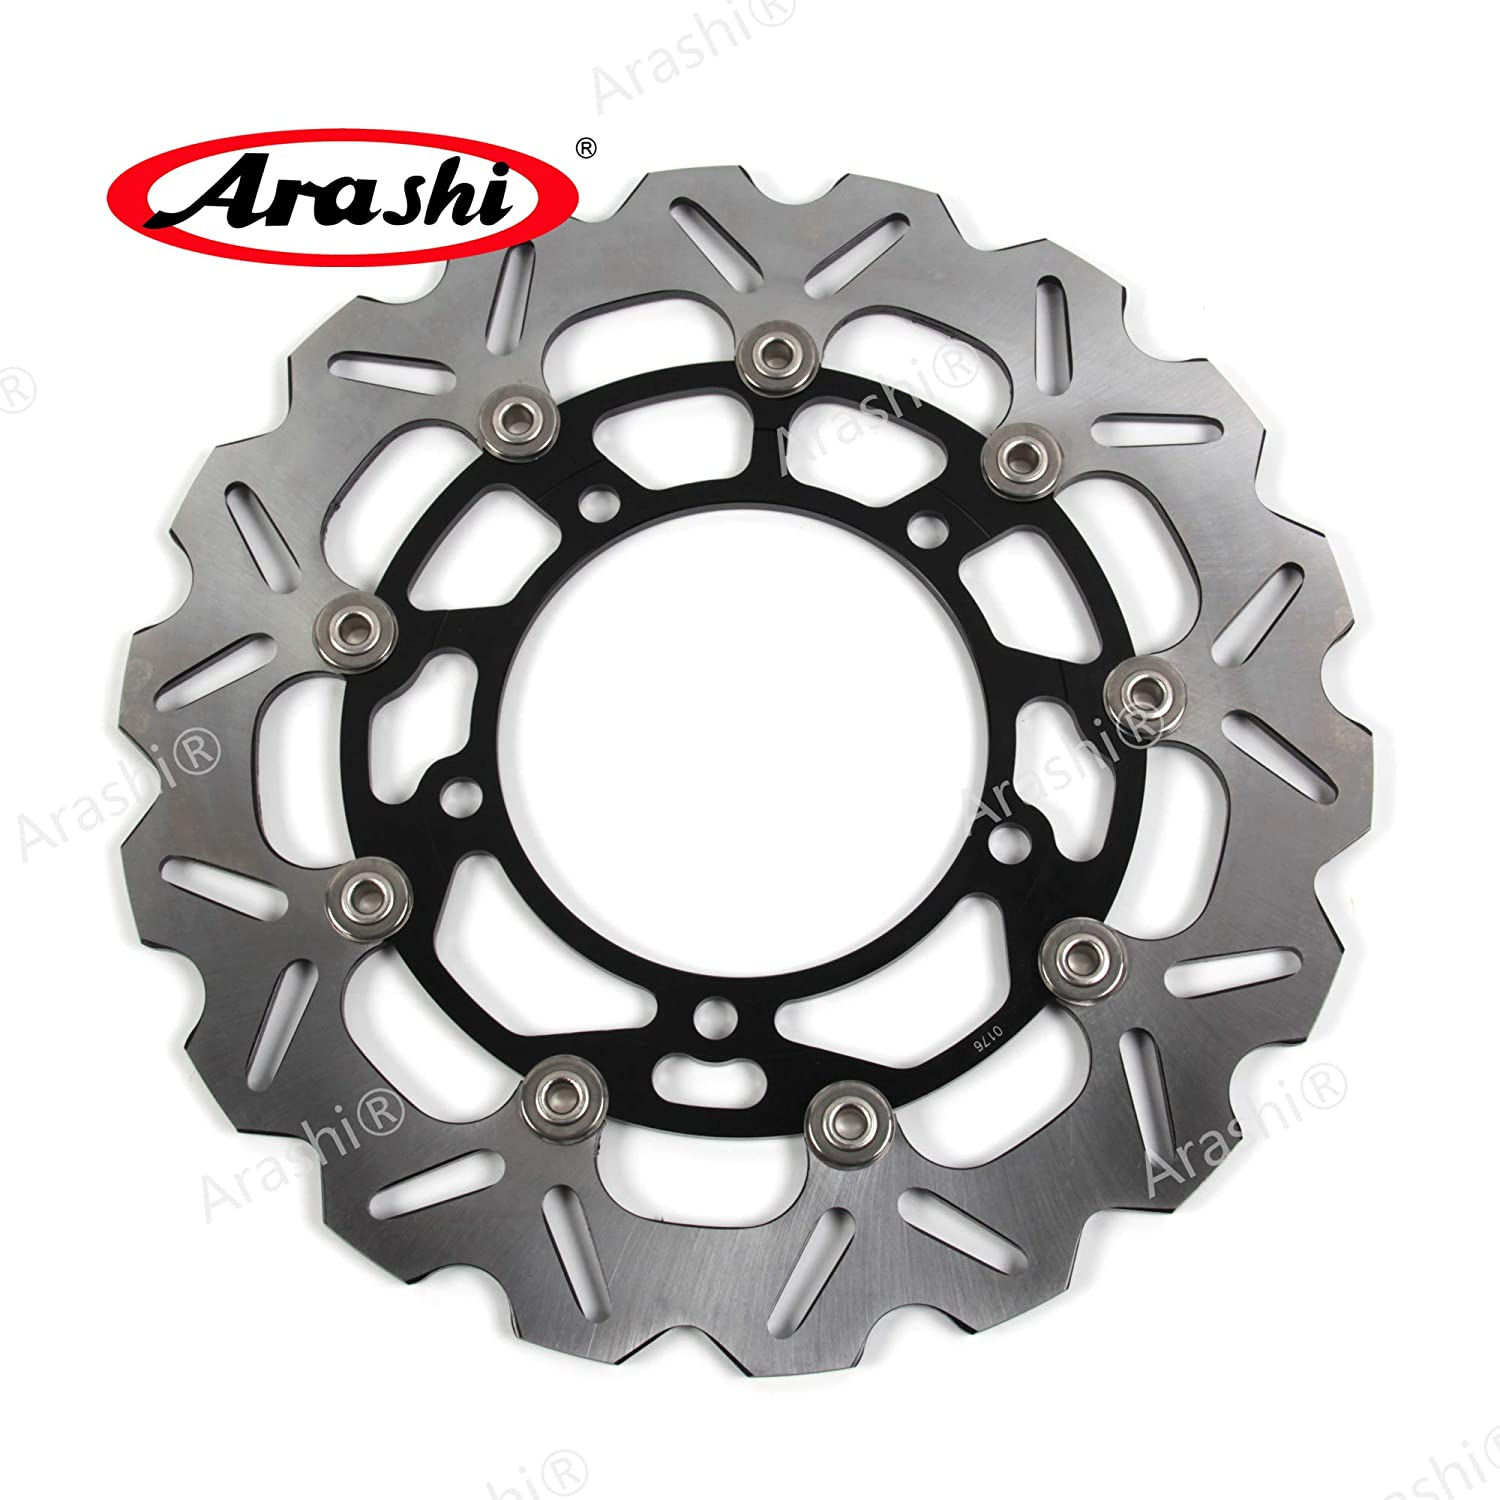 Arashi Brake Disc Rotors Front and Rear for Suzuki Hayabusa GSXR 1300 2008-2019 ABS 13-19 B-KING 1300 2008-2010 Motorcycle Replacement Accessories GSX1300R GSX-R1300 Black